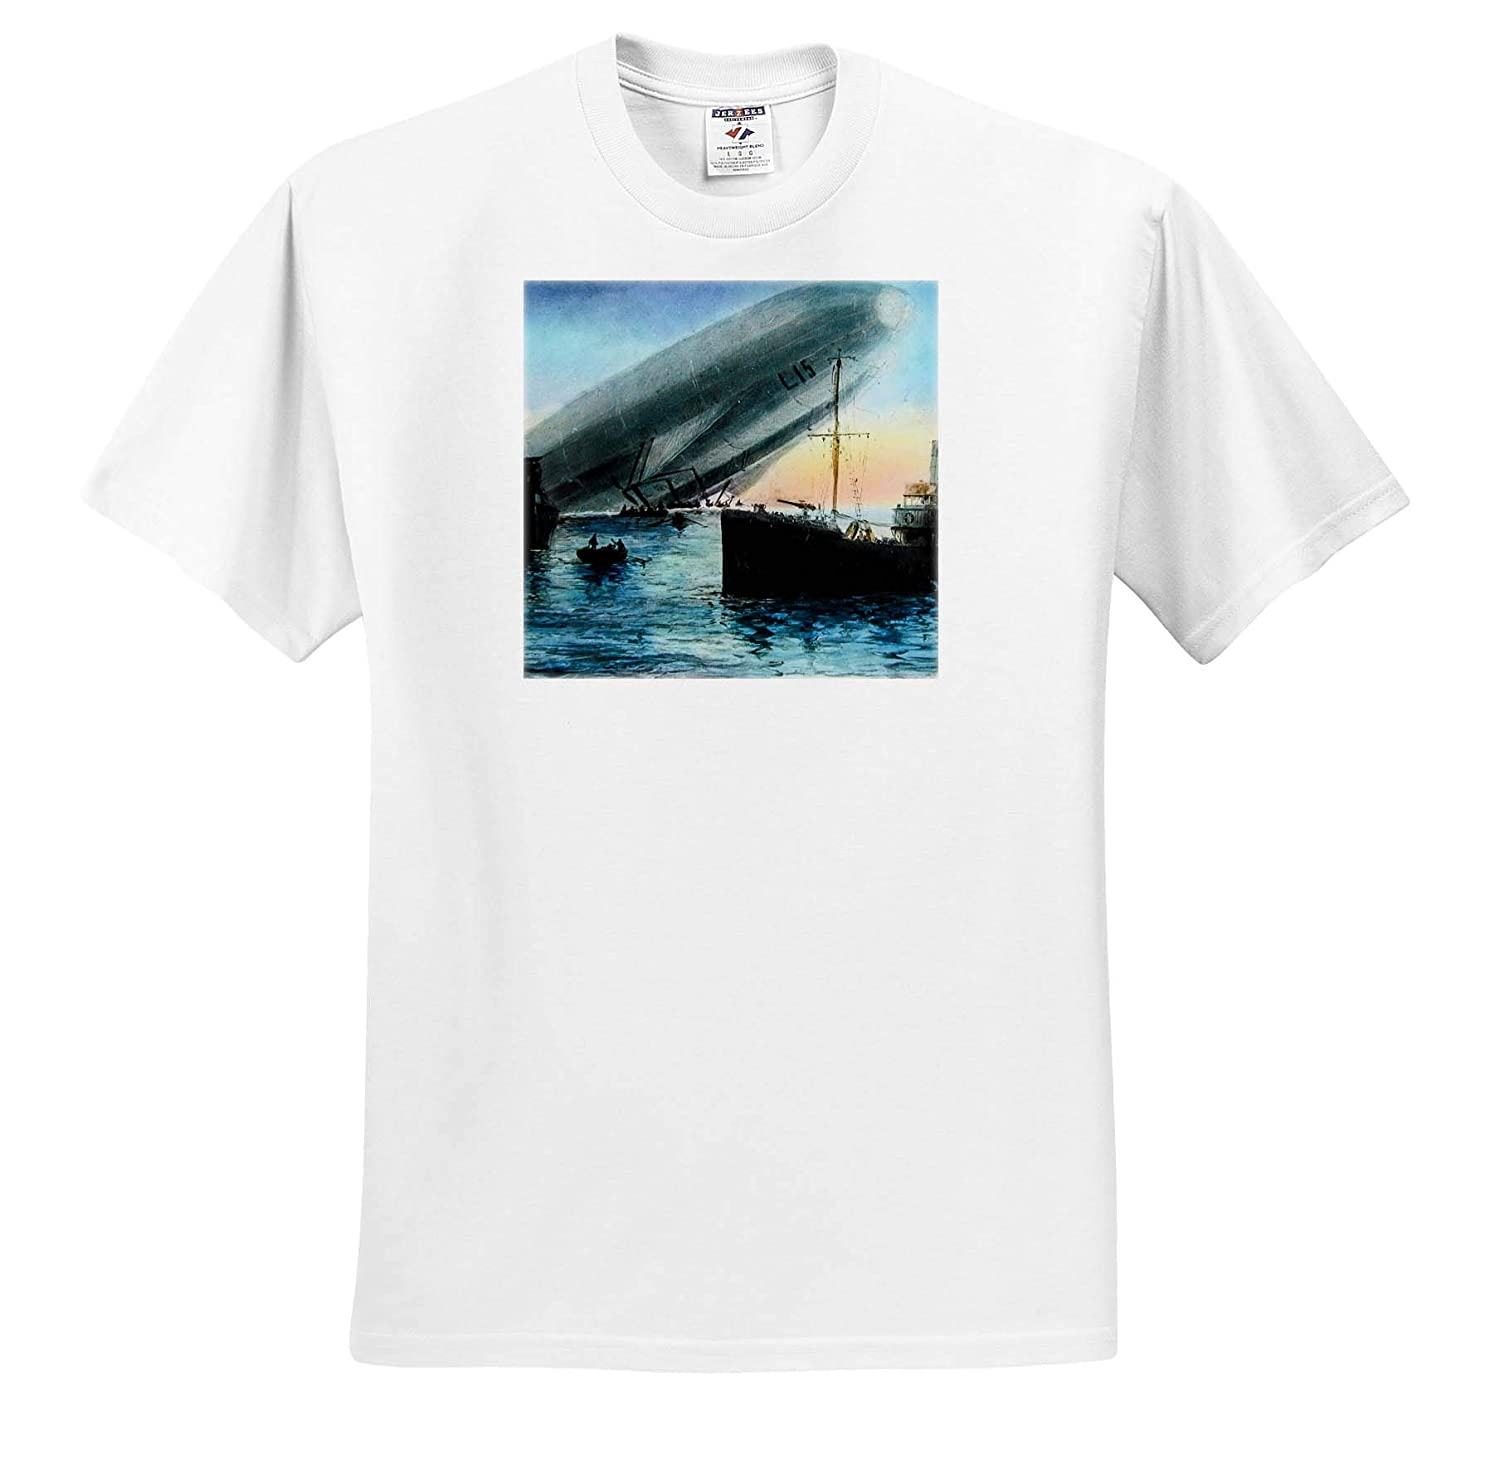 3dRose Scenes from The Past T-Shirts Magic Lantern Zeppelin L15 Crashed in The Thames World War One Vintage